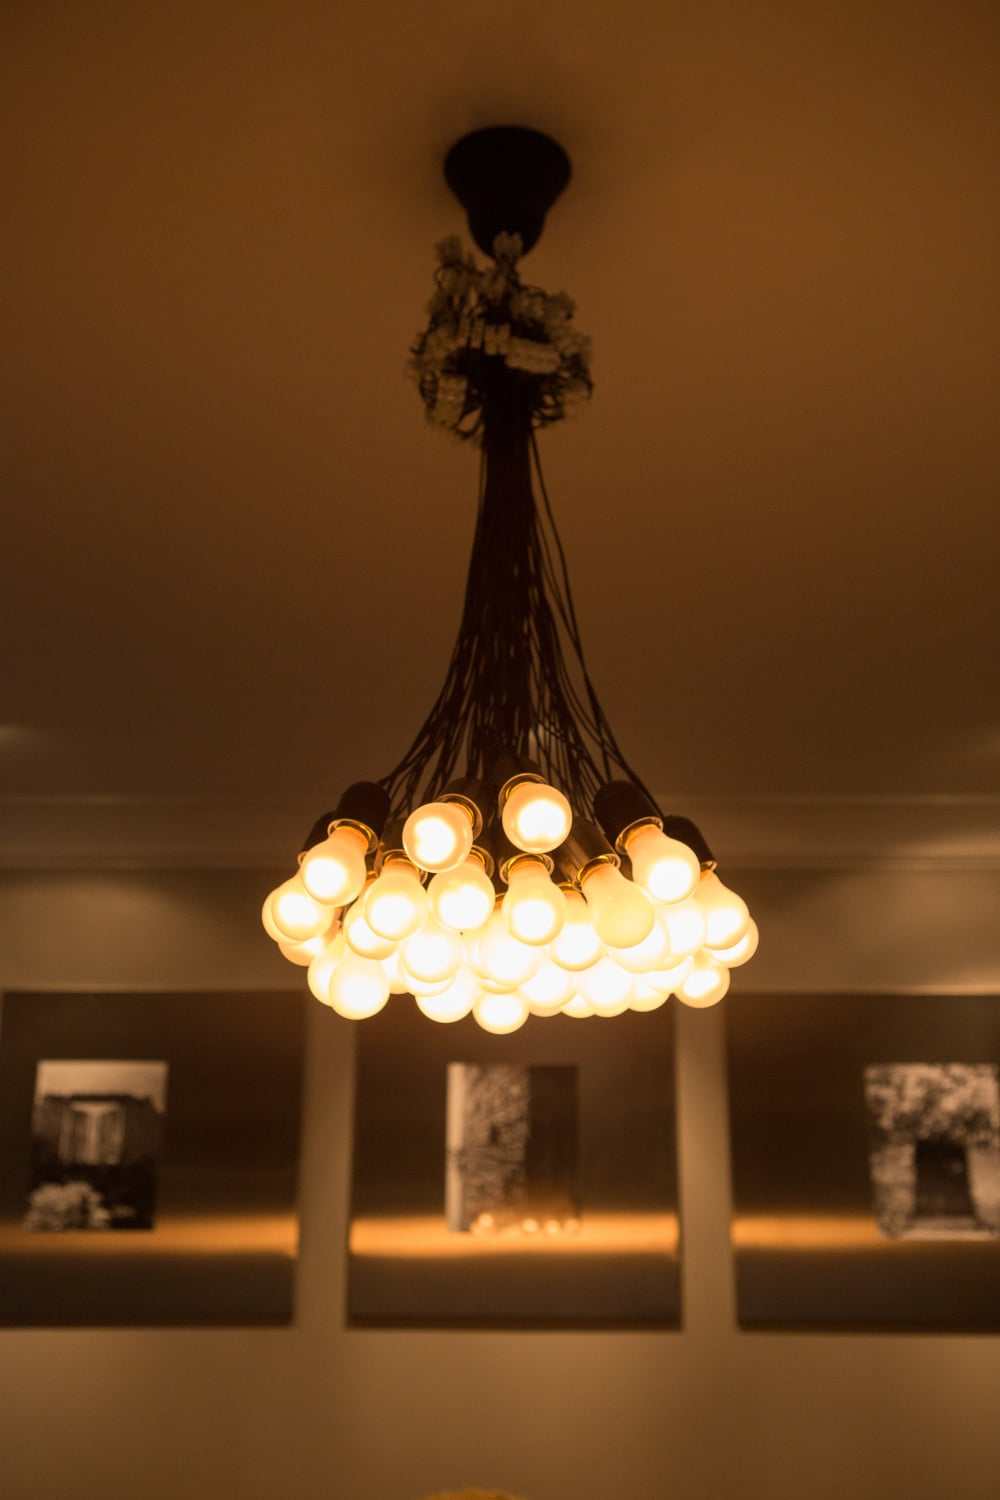 dining light fixture.jpg